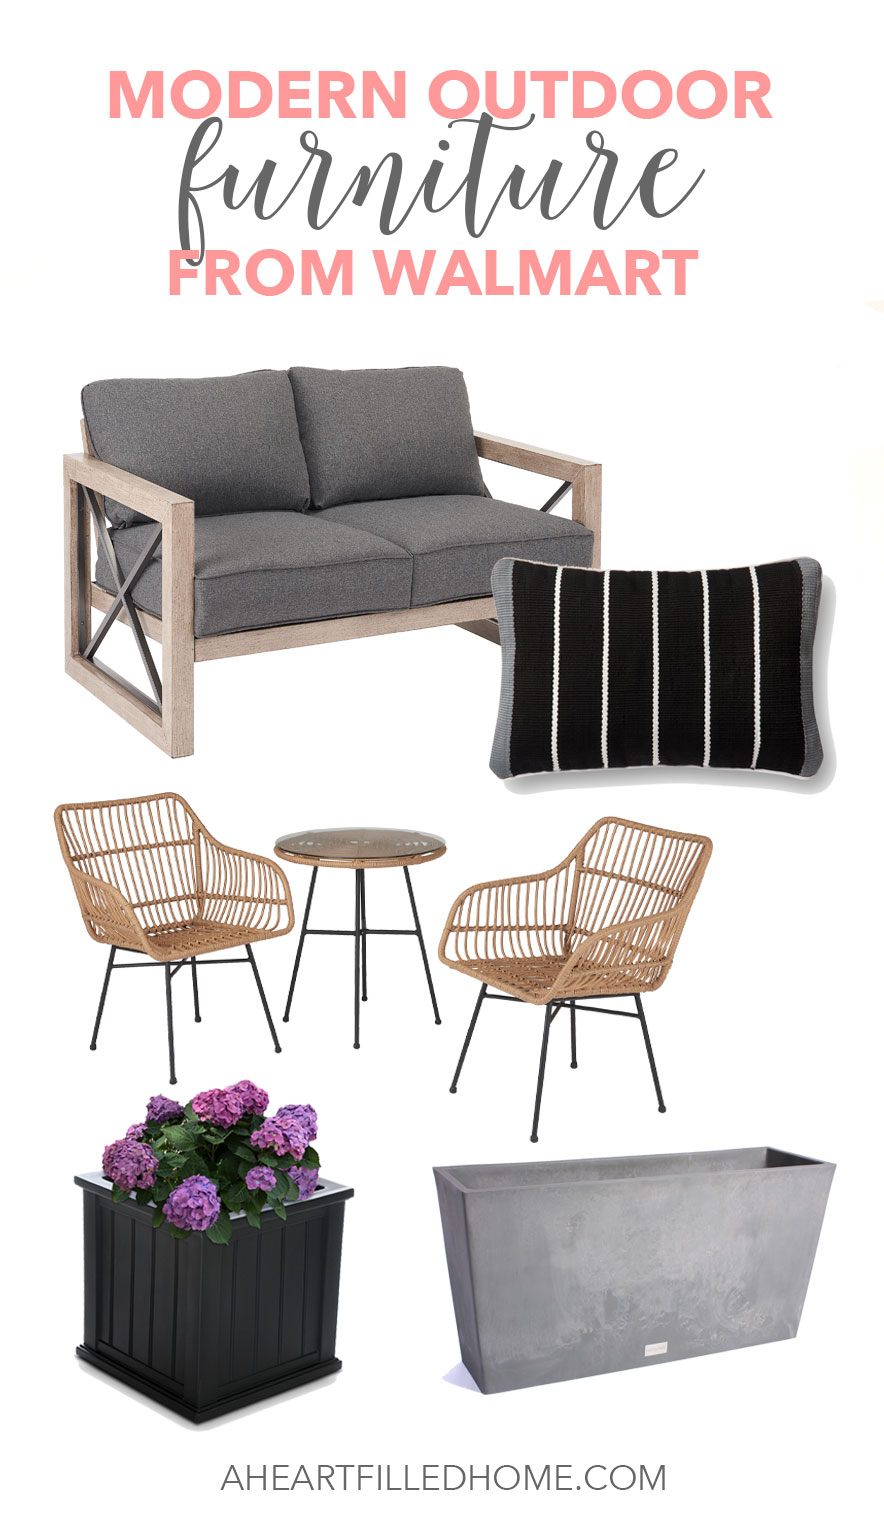 Modern outdoor furniture from Walmart! Find these beautiful and budget friendly outdoor furniture sets, pillows, rugs, and planters from Walmart! from A Heart Filled Home